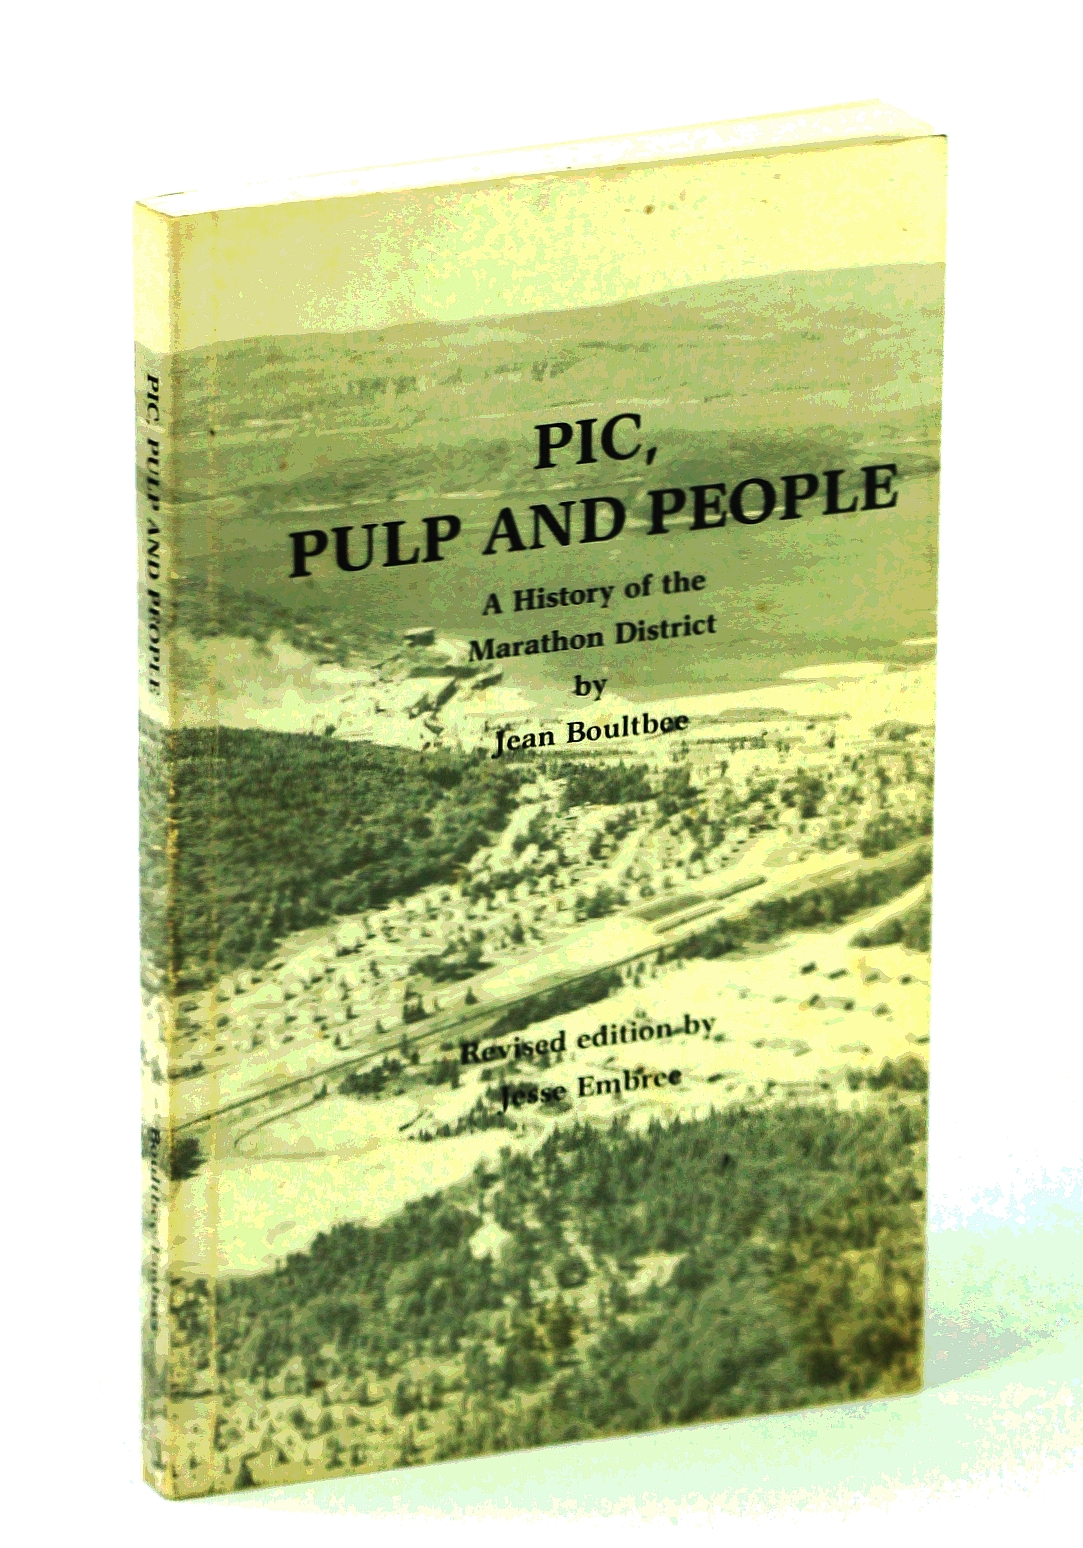 Image for Pic, Pulp and People: A History of the Marathon District (Revised Edition)